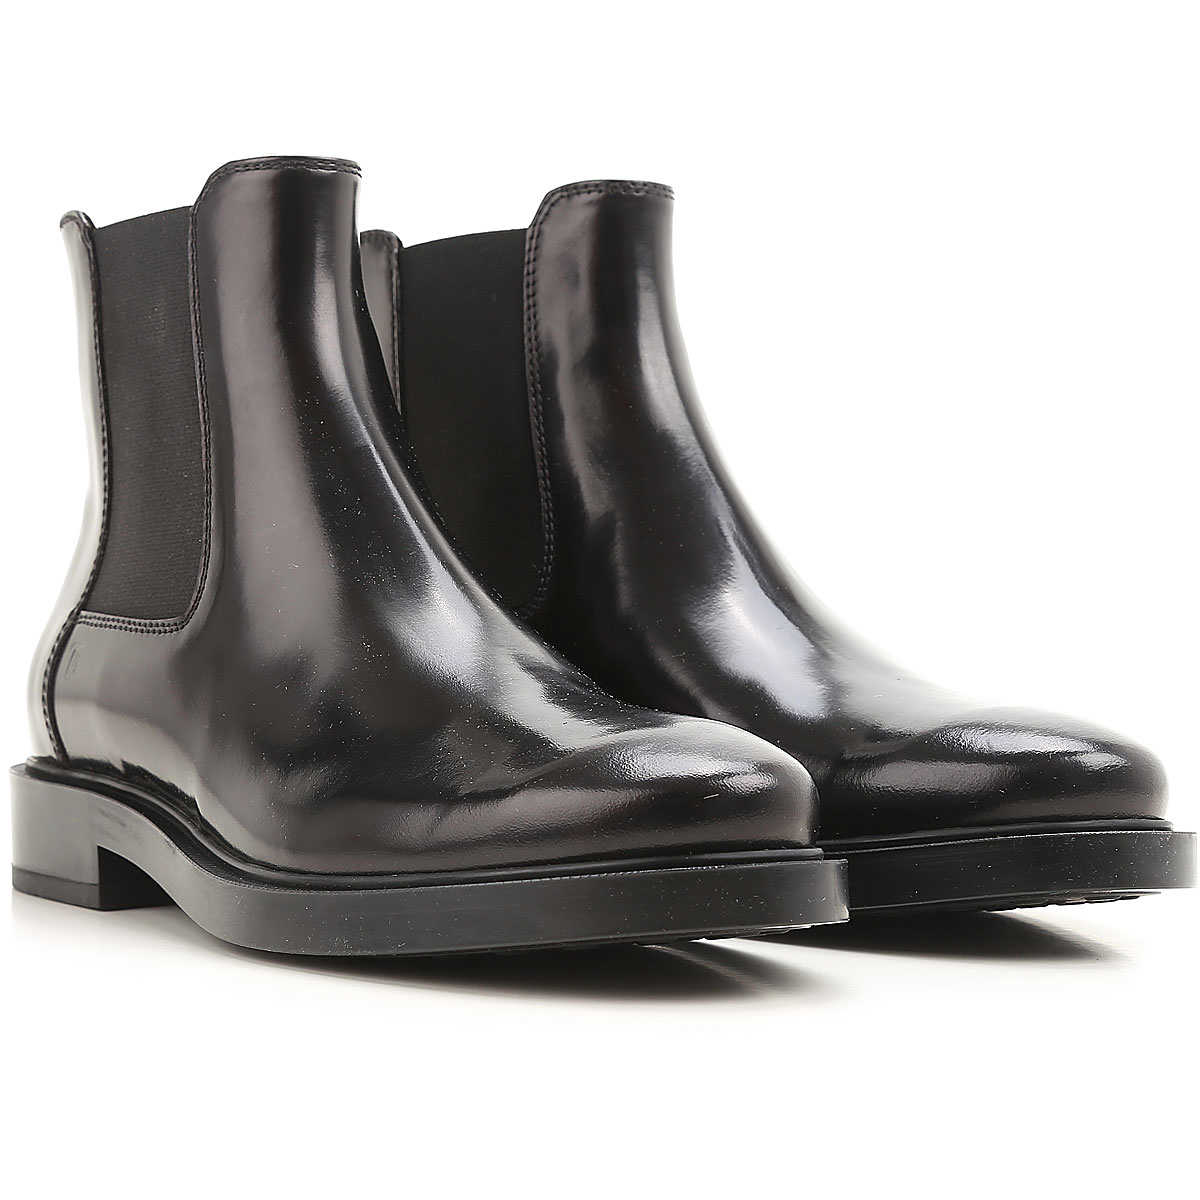 Tods Boots for Women Booties DK - GOOFASH - Womens BOOTS